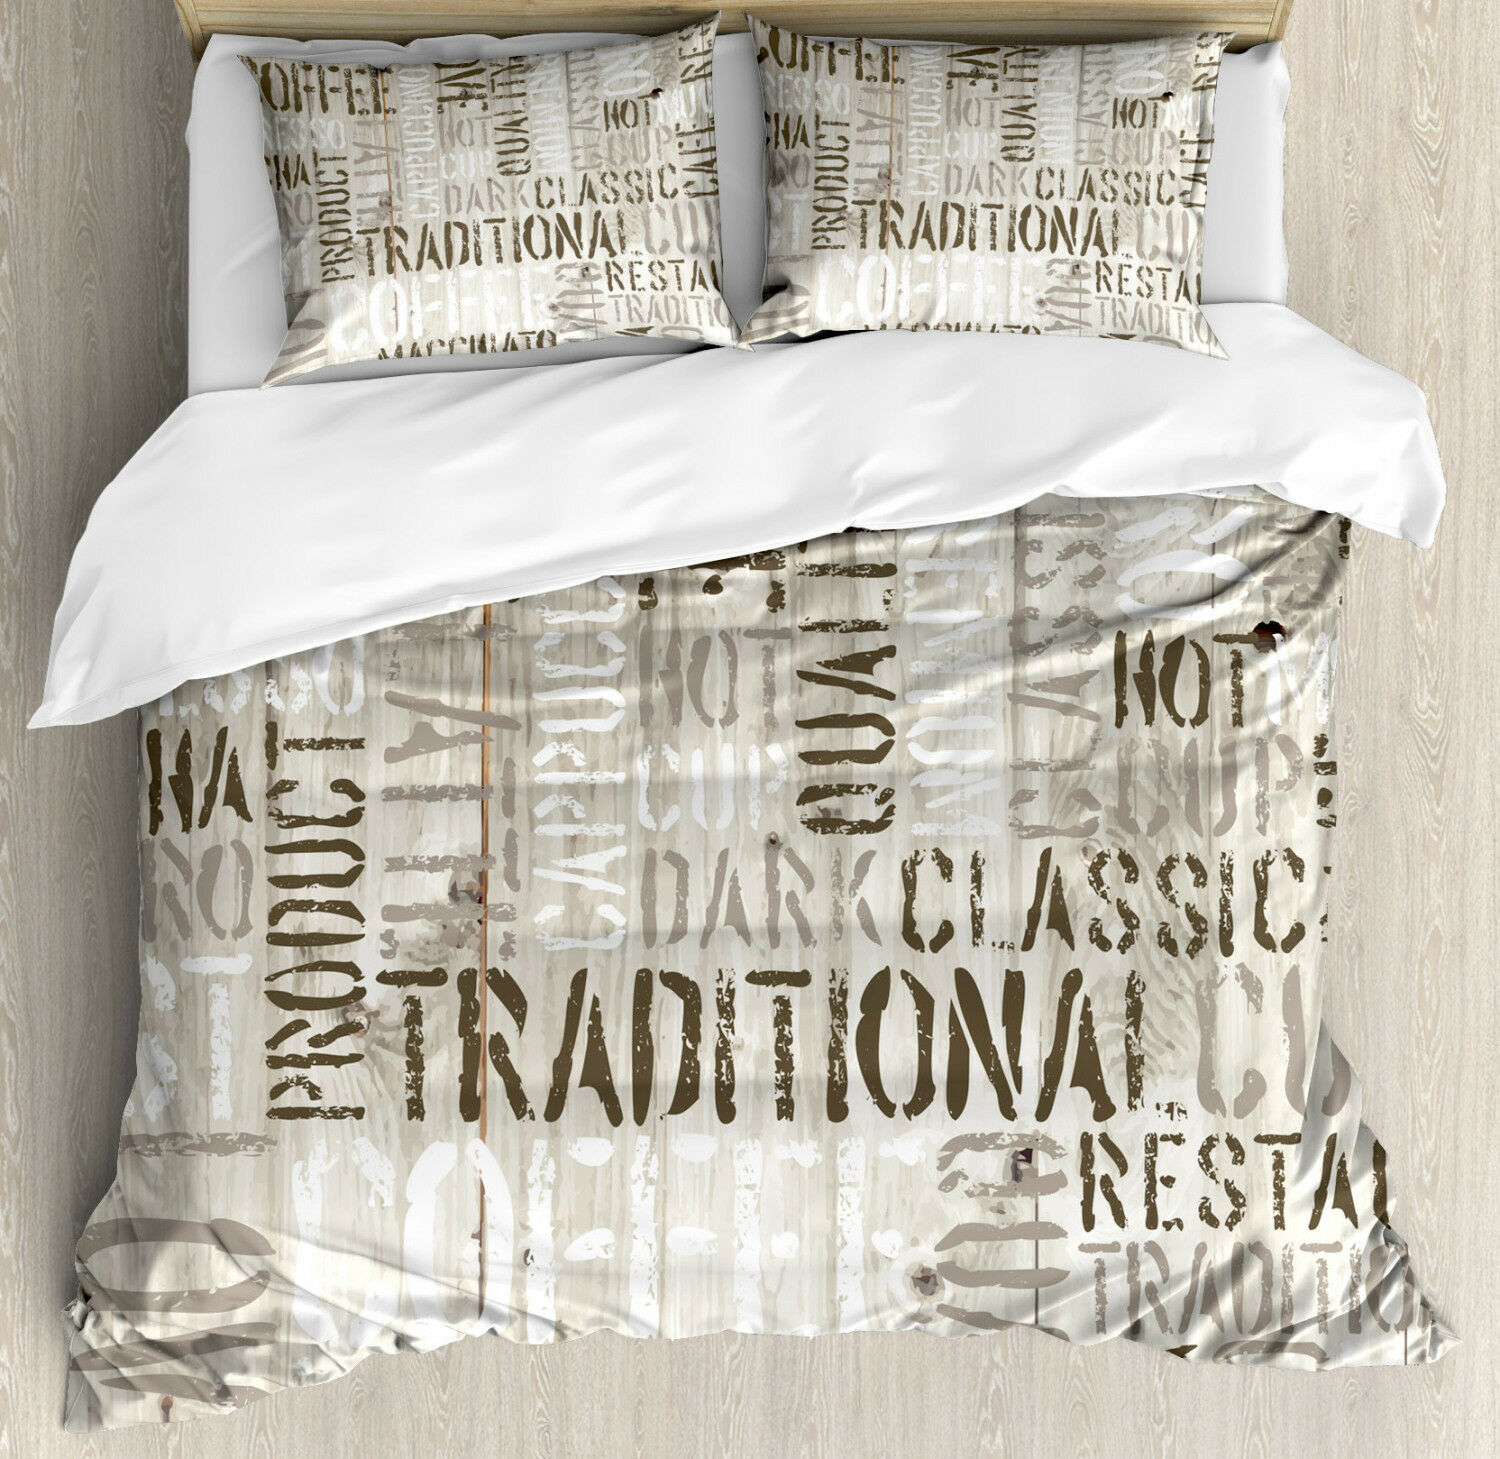 Wooden Duvet Cover Set with Pillow Shams Coffee Phrase Espresso Print